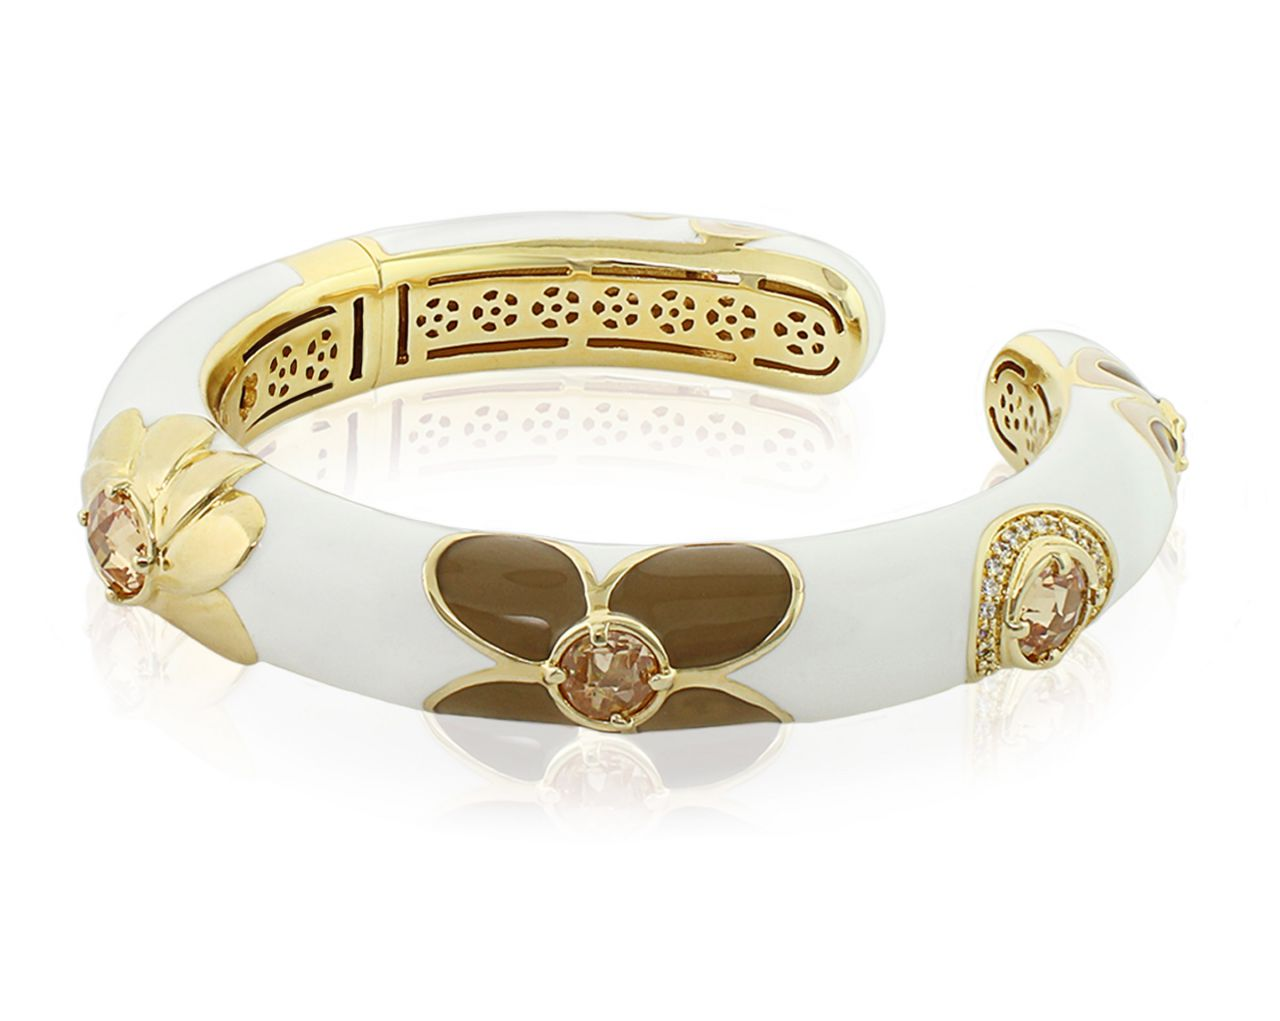 Lauren G Adams Falling Flowers bangle bracelet